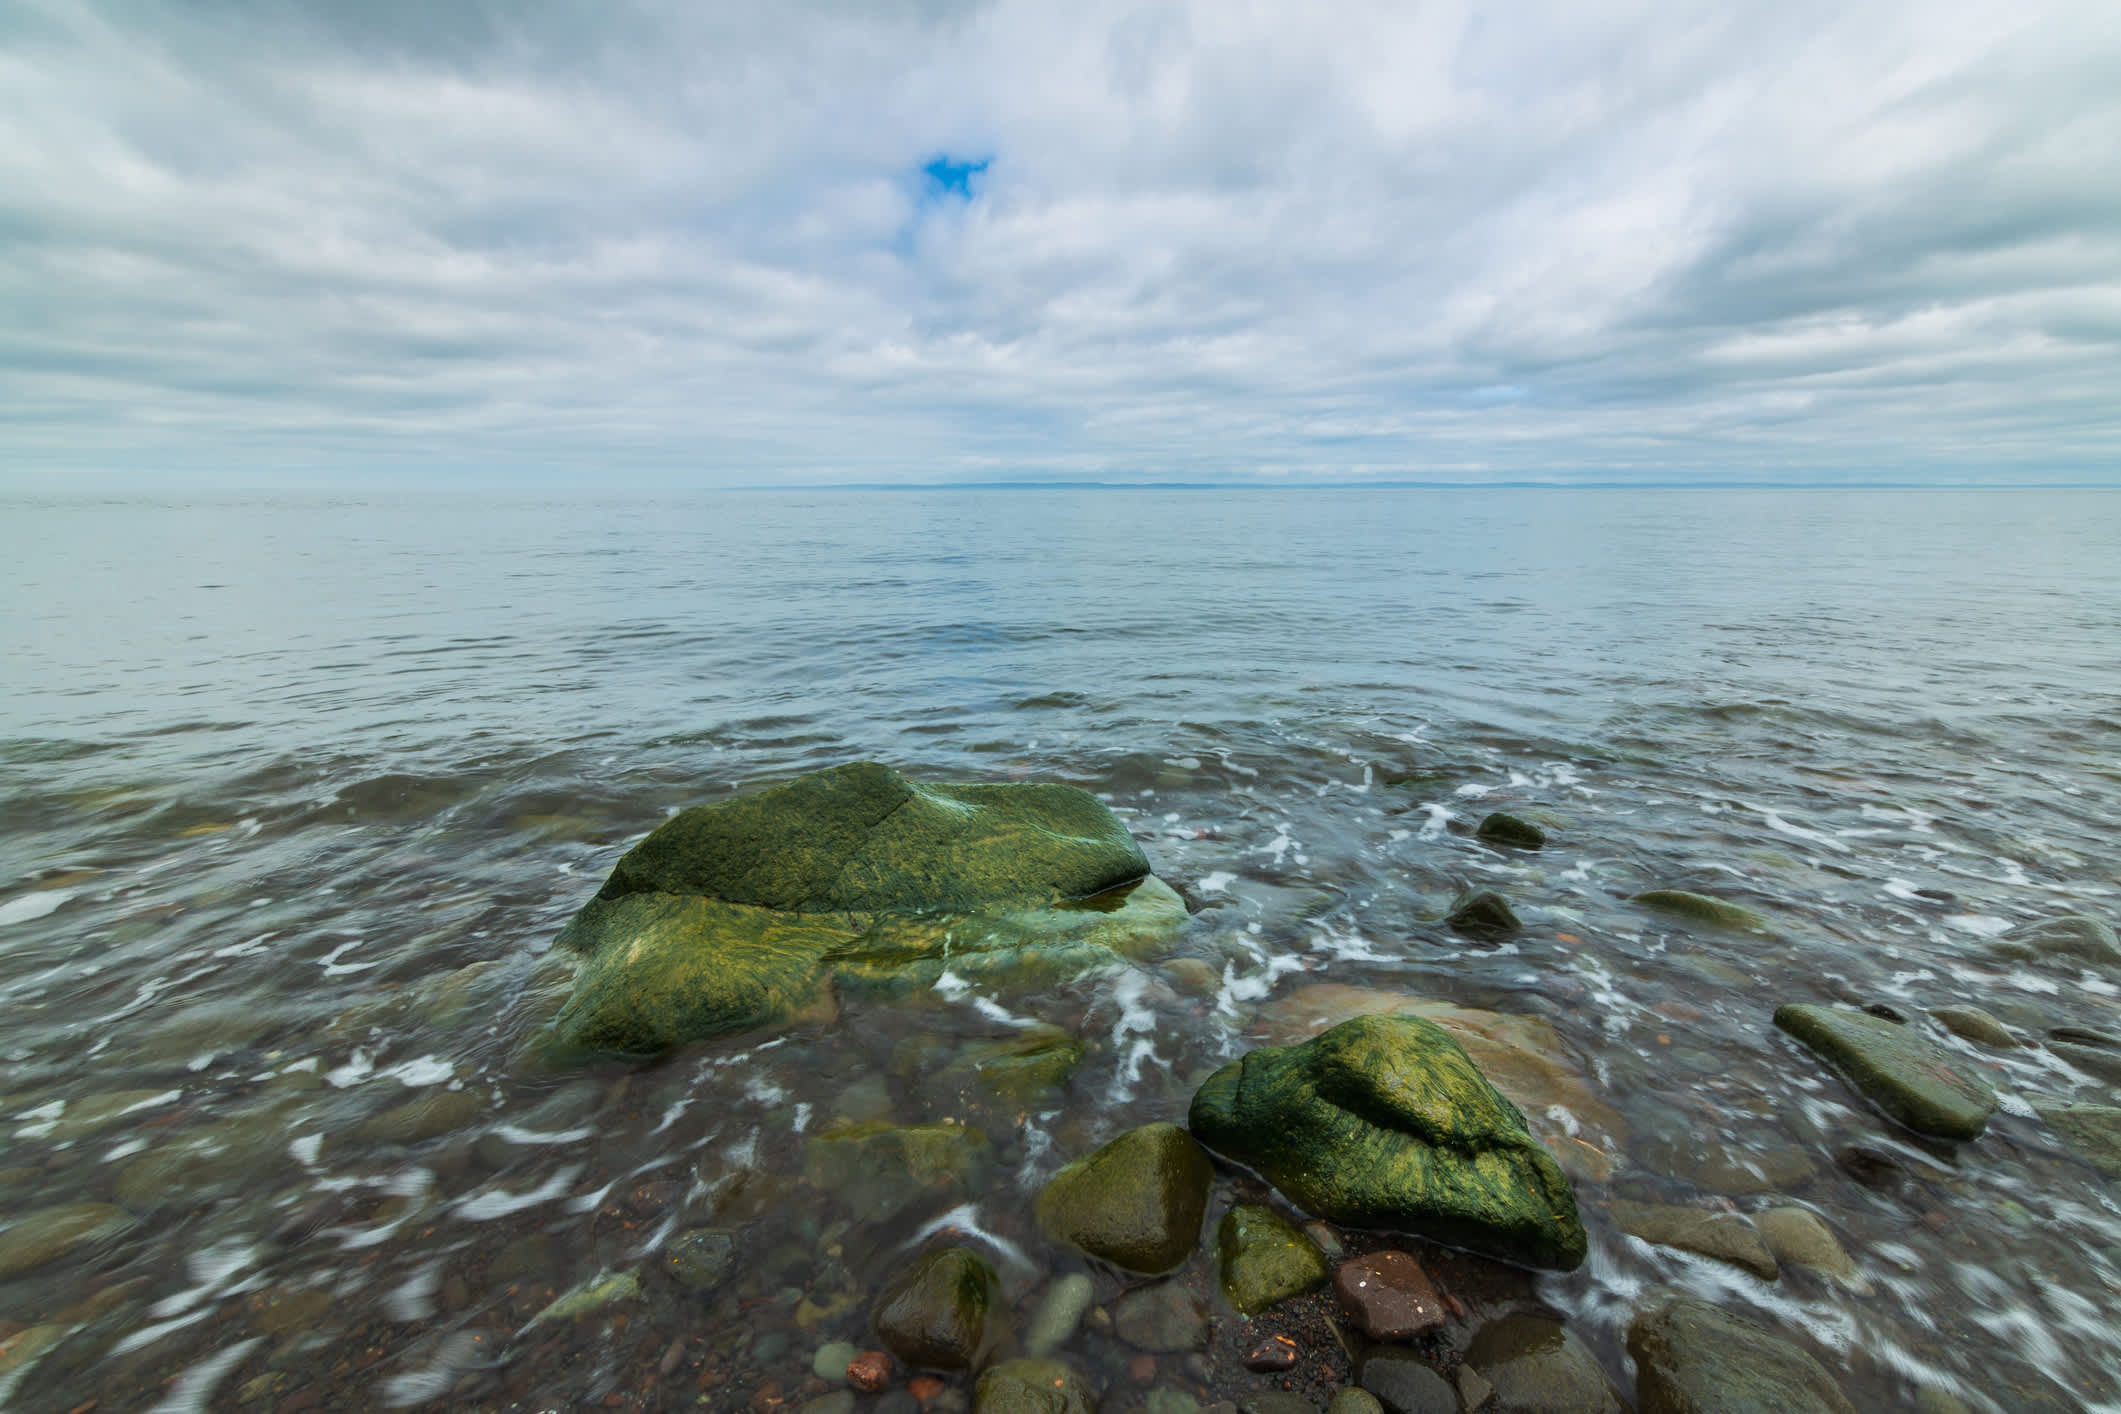 Tidal power project in Canada's Bay of Fundy secures support of Japanese firms